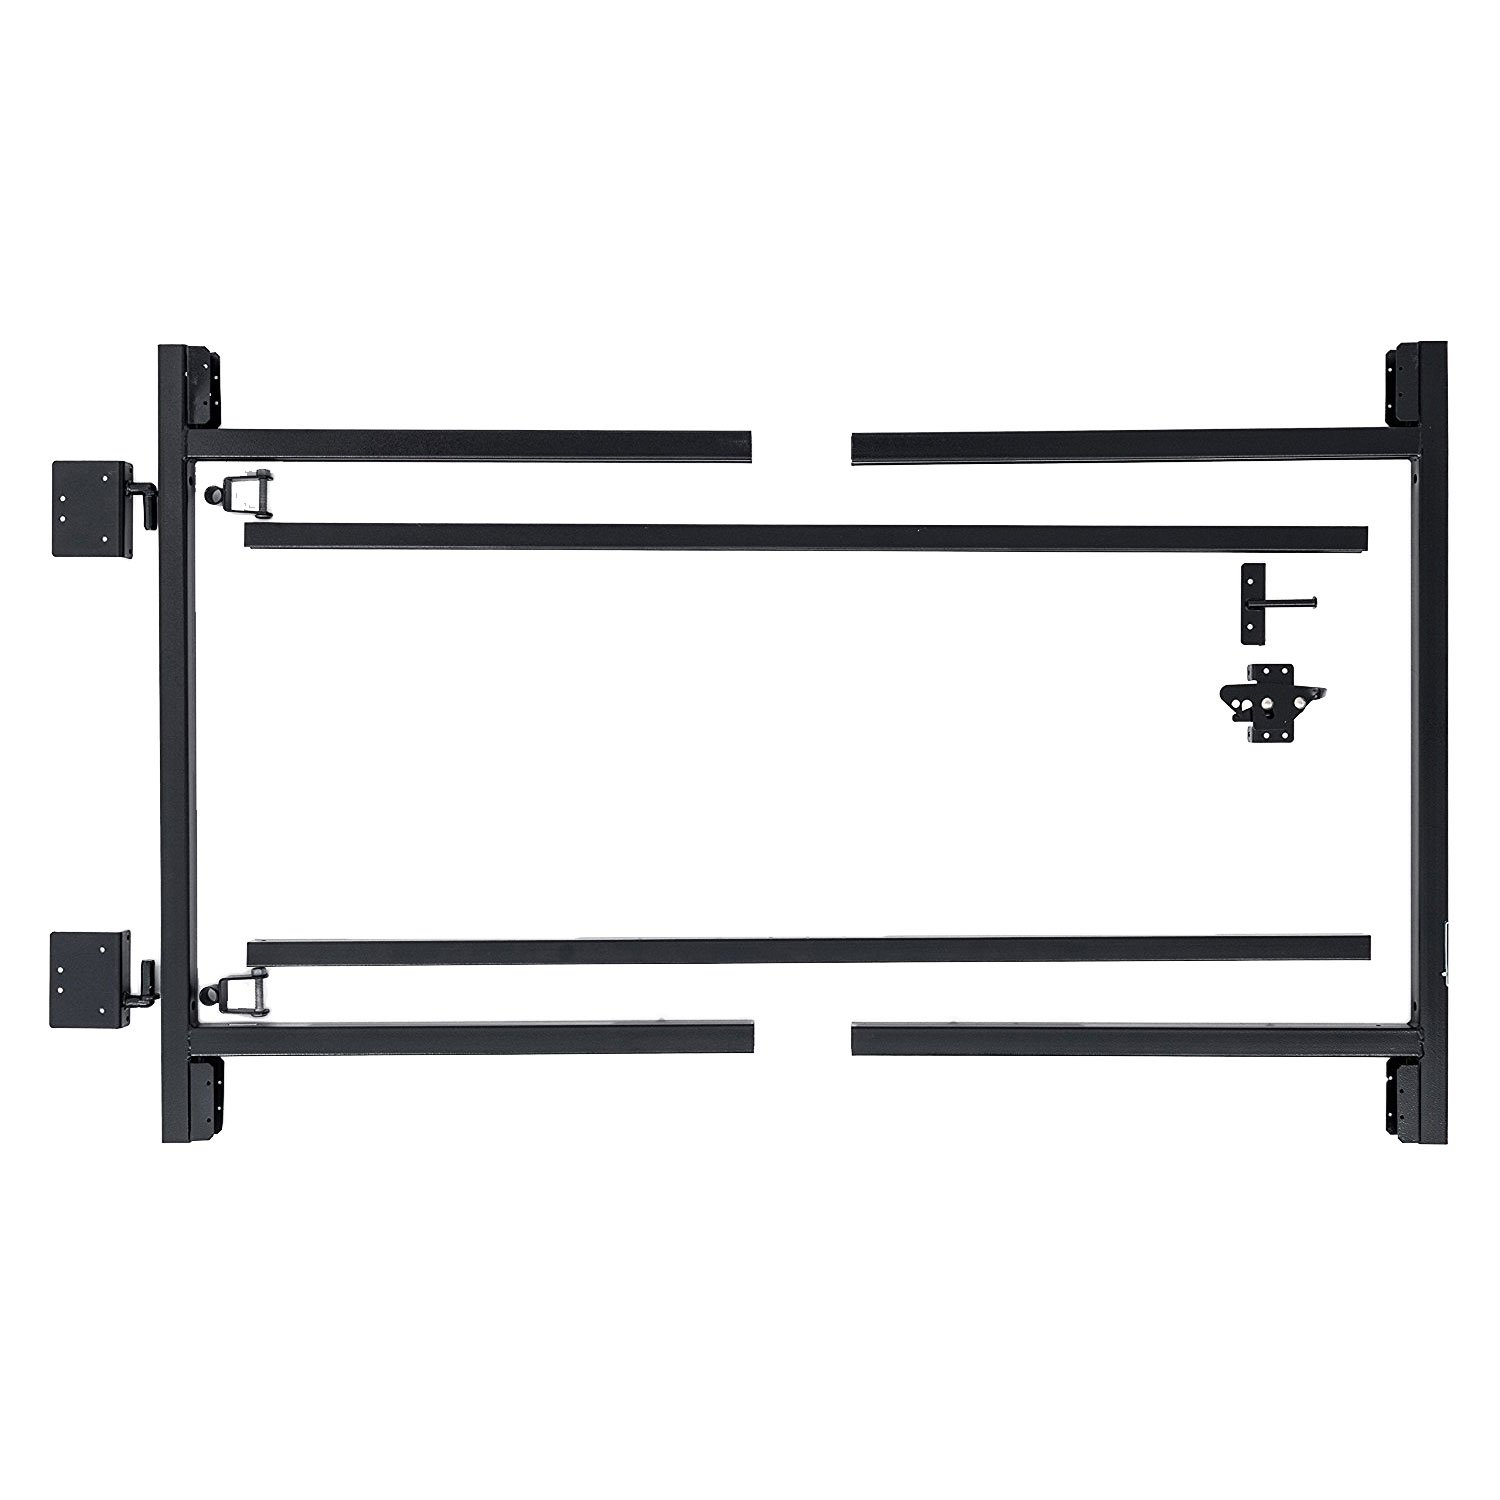 Adjust-A-Gate Steel Frame Gate Building Kit, 60''-96'' Wide Opening Up to 4' High (2 Pack) by Adjust-A-Gate (Image #3)